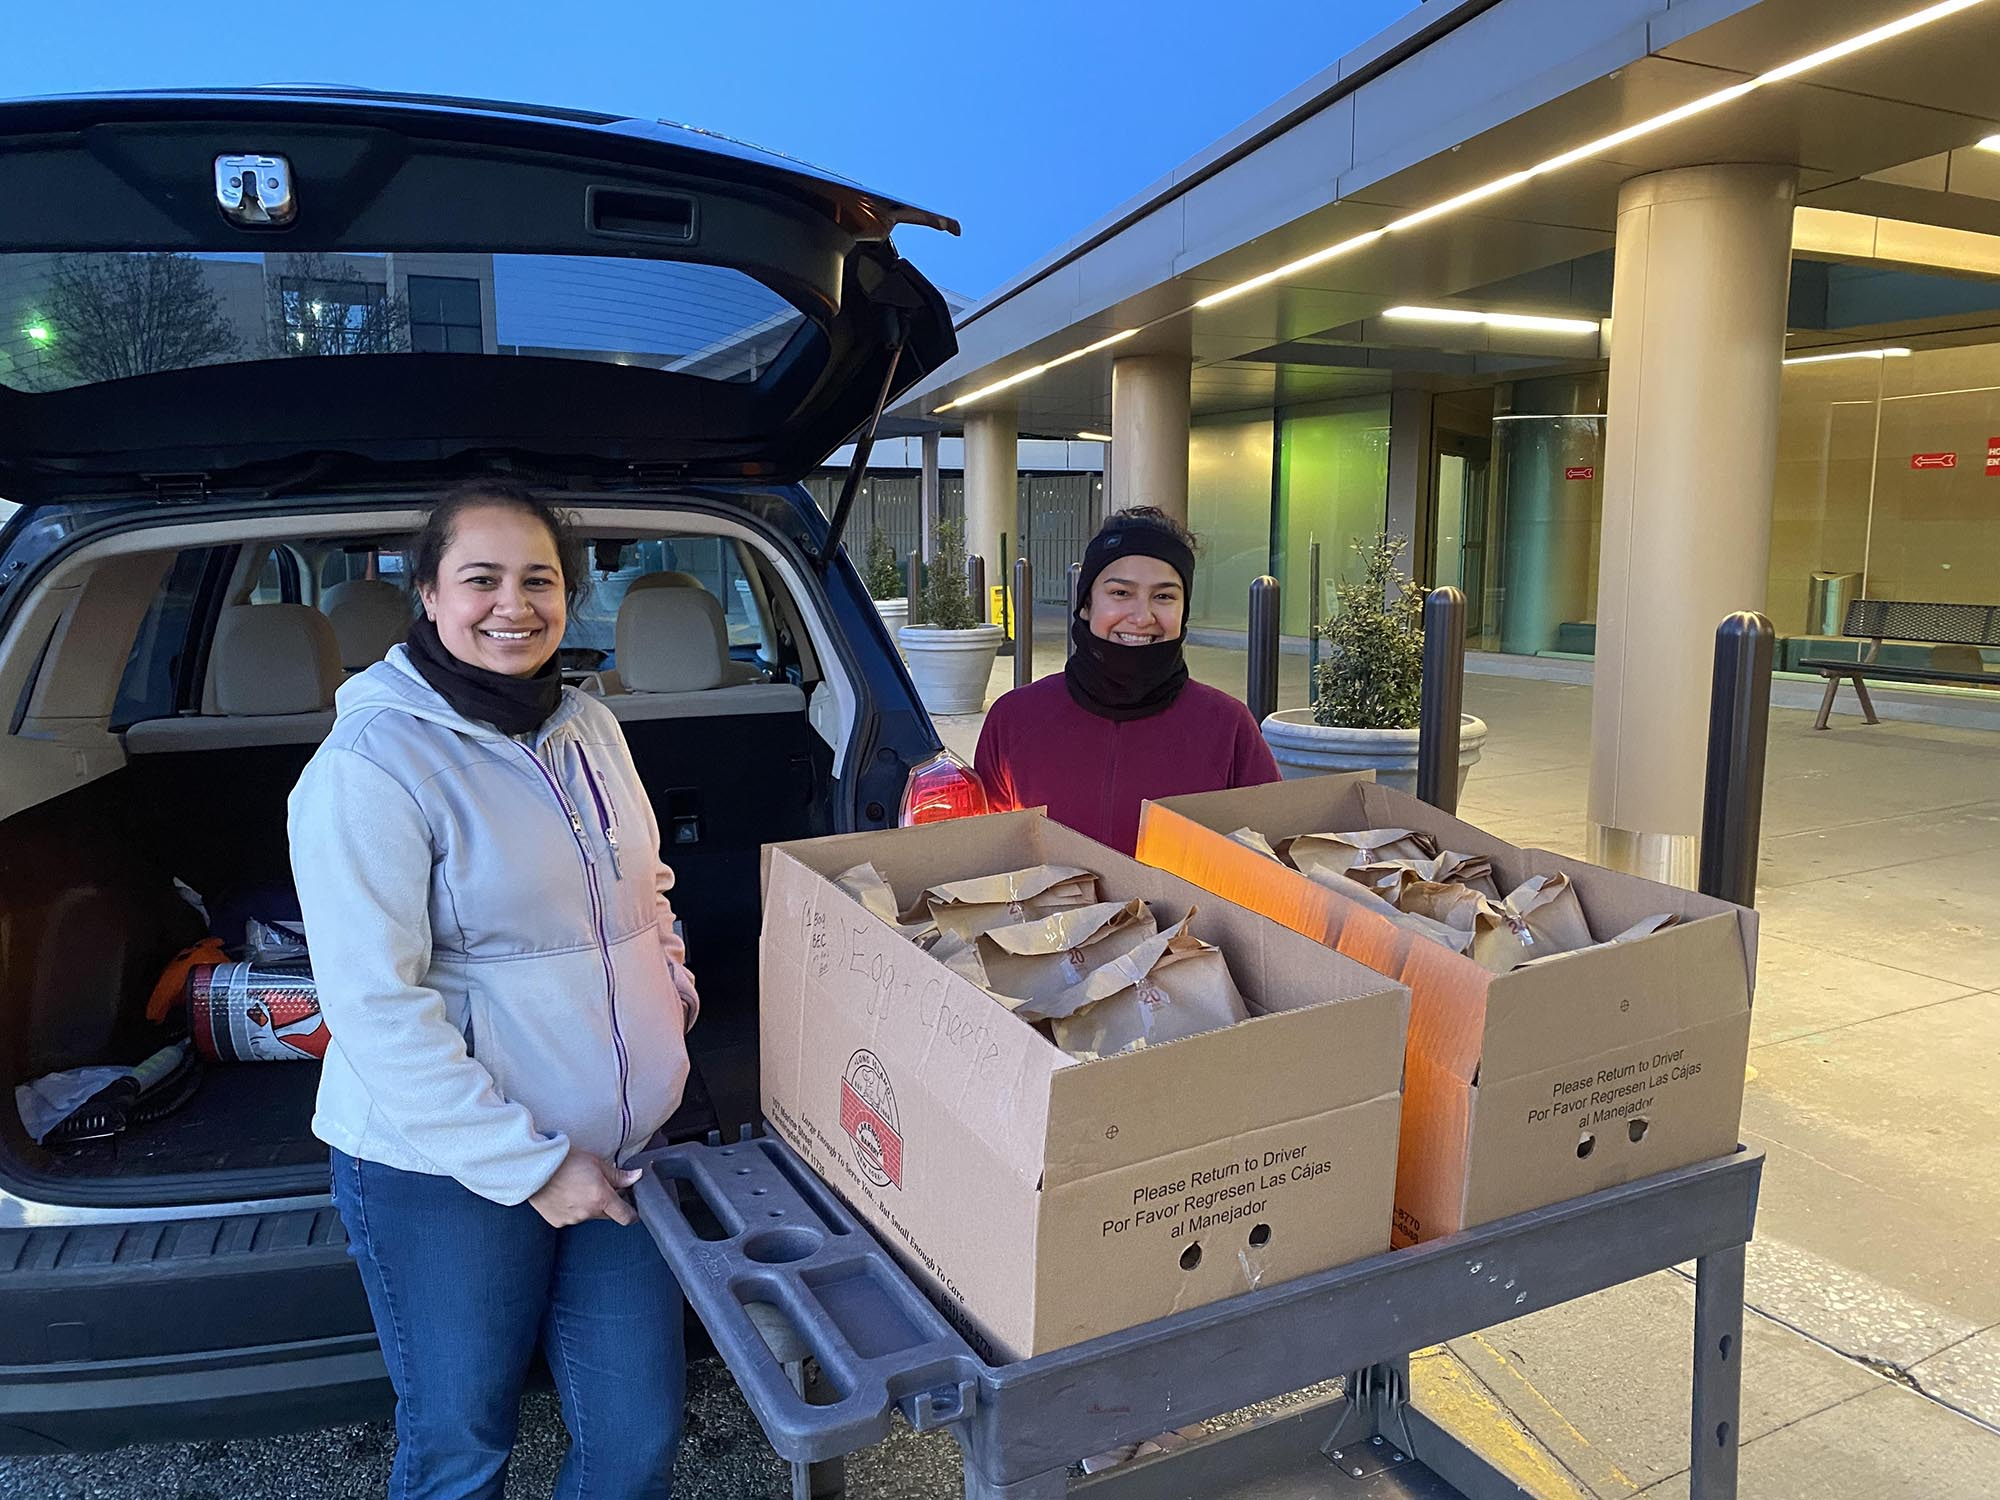 Dina Patel and her daughter brought breakfast to custodial staff bright and early to show their appreciation.